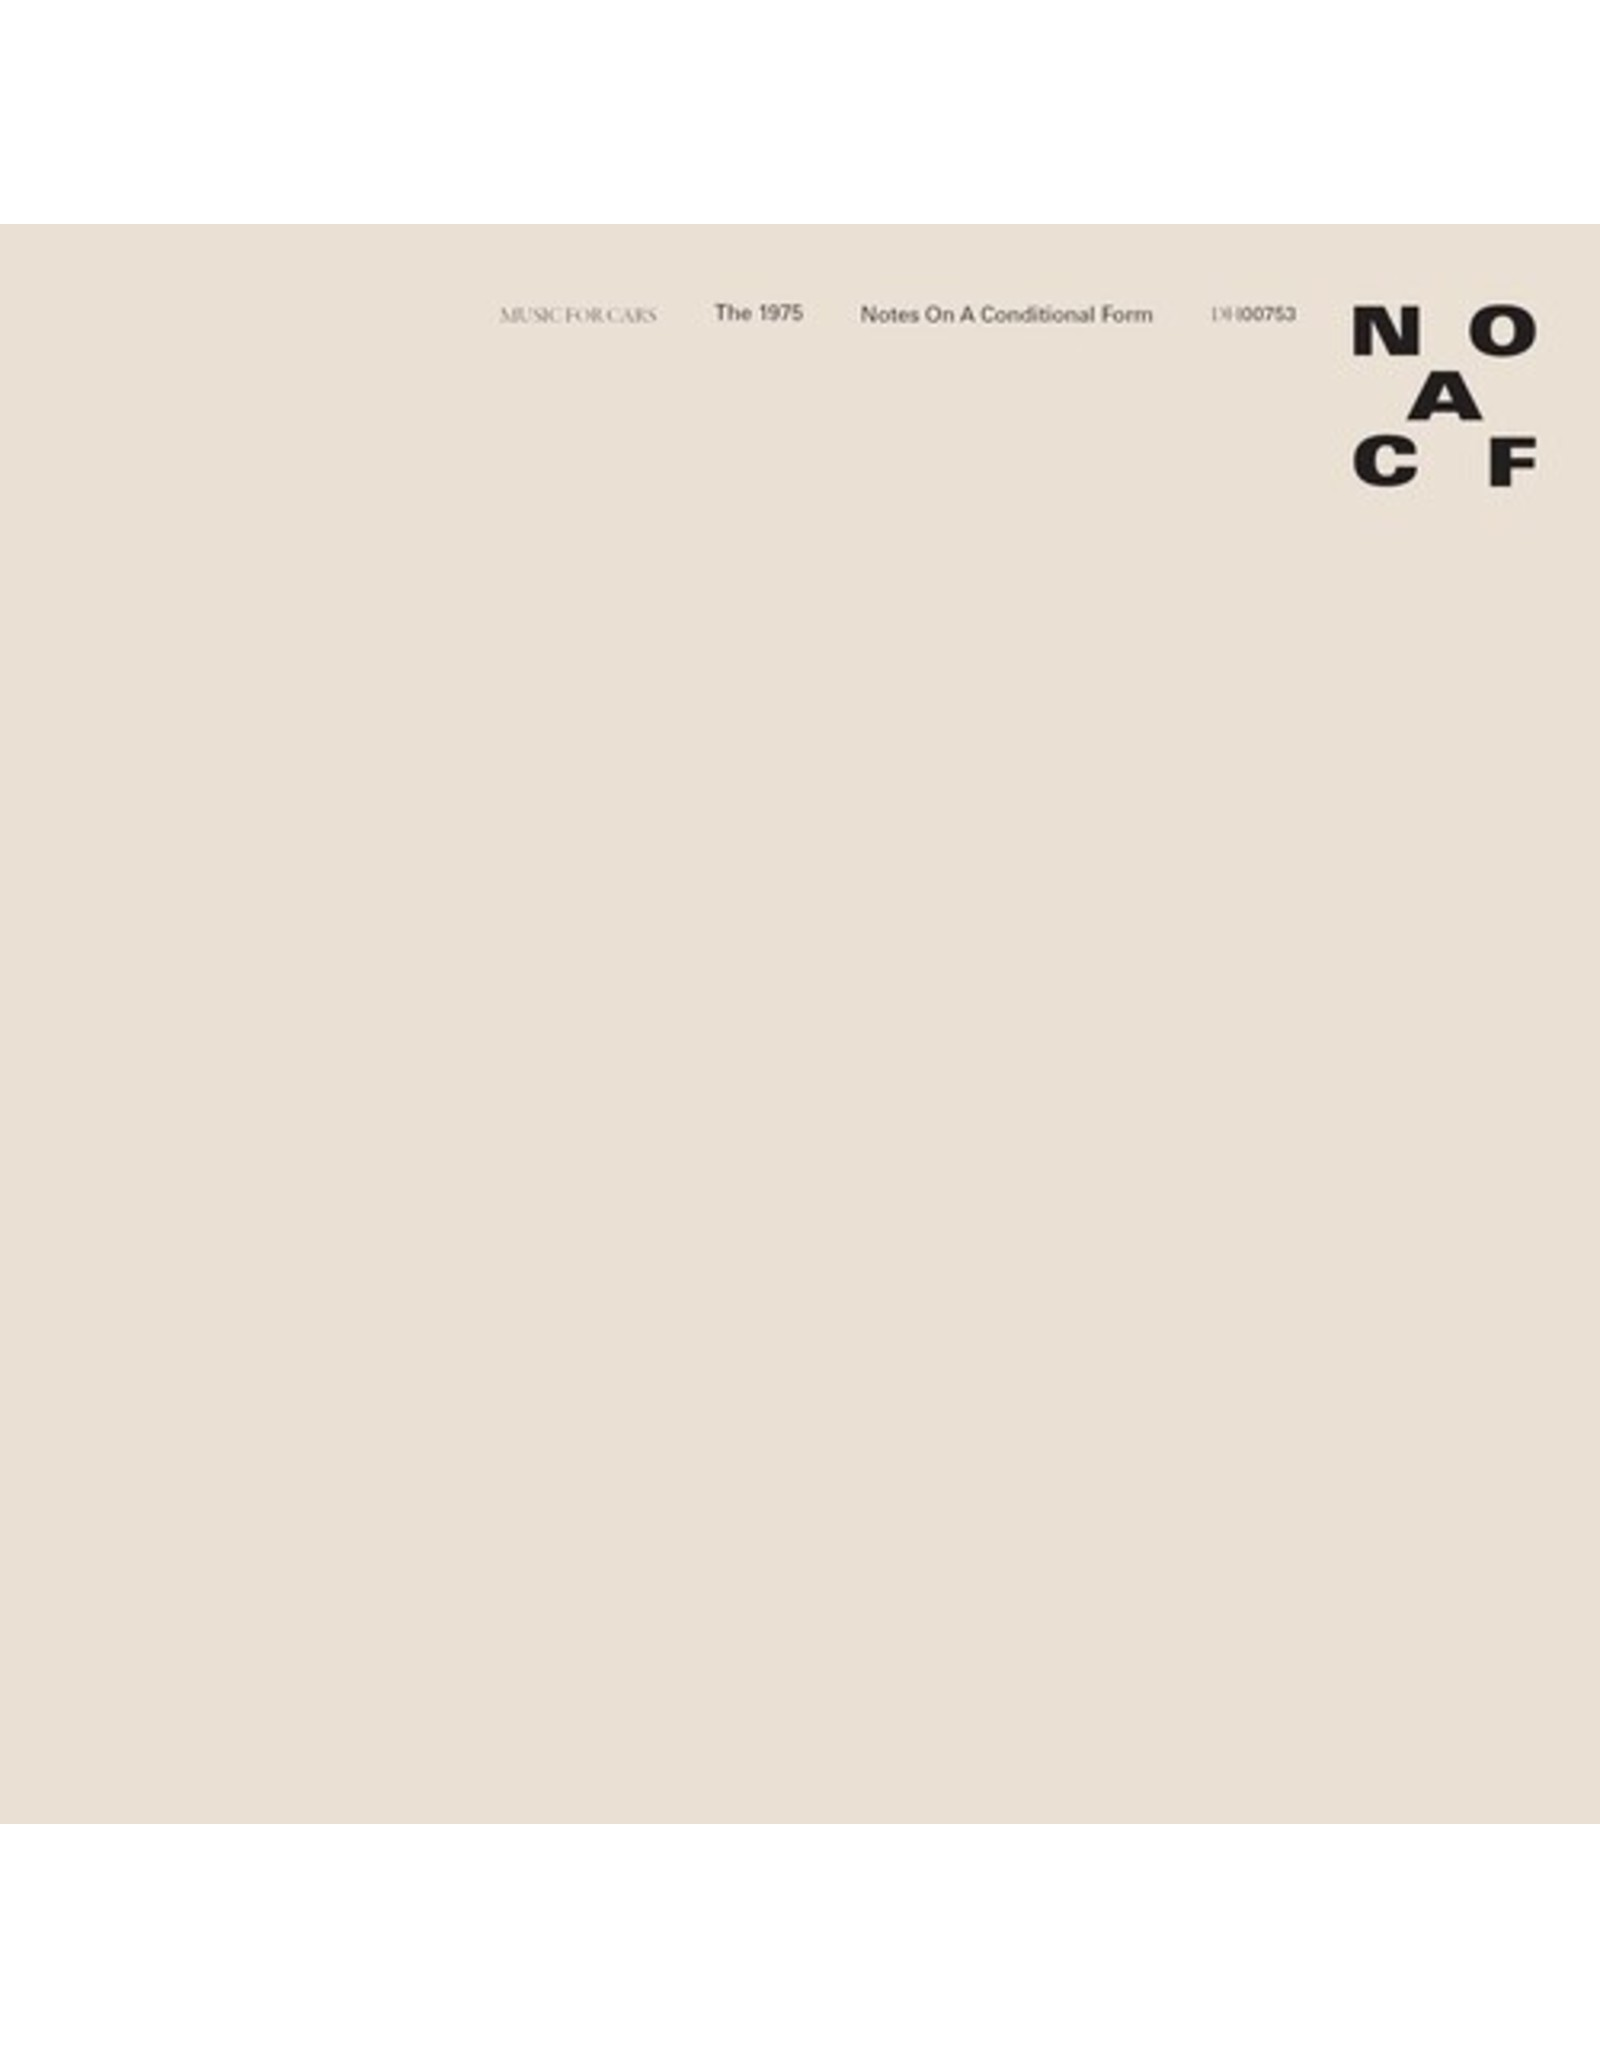 New Vinyl The 1975 - Notes On A Conditional Form (Clear) 2LP